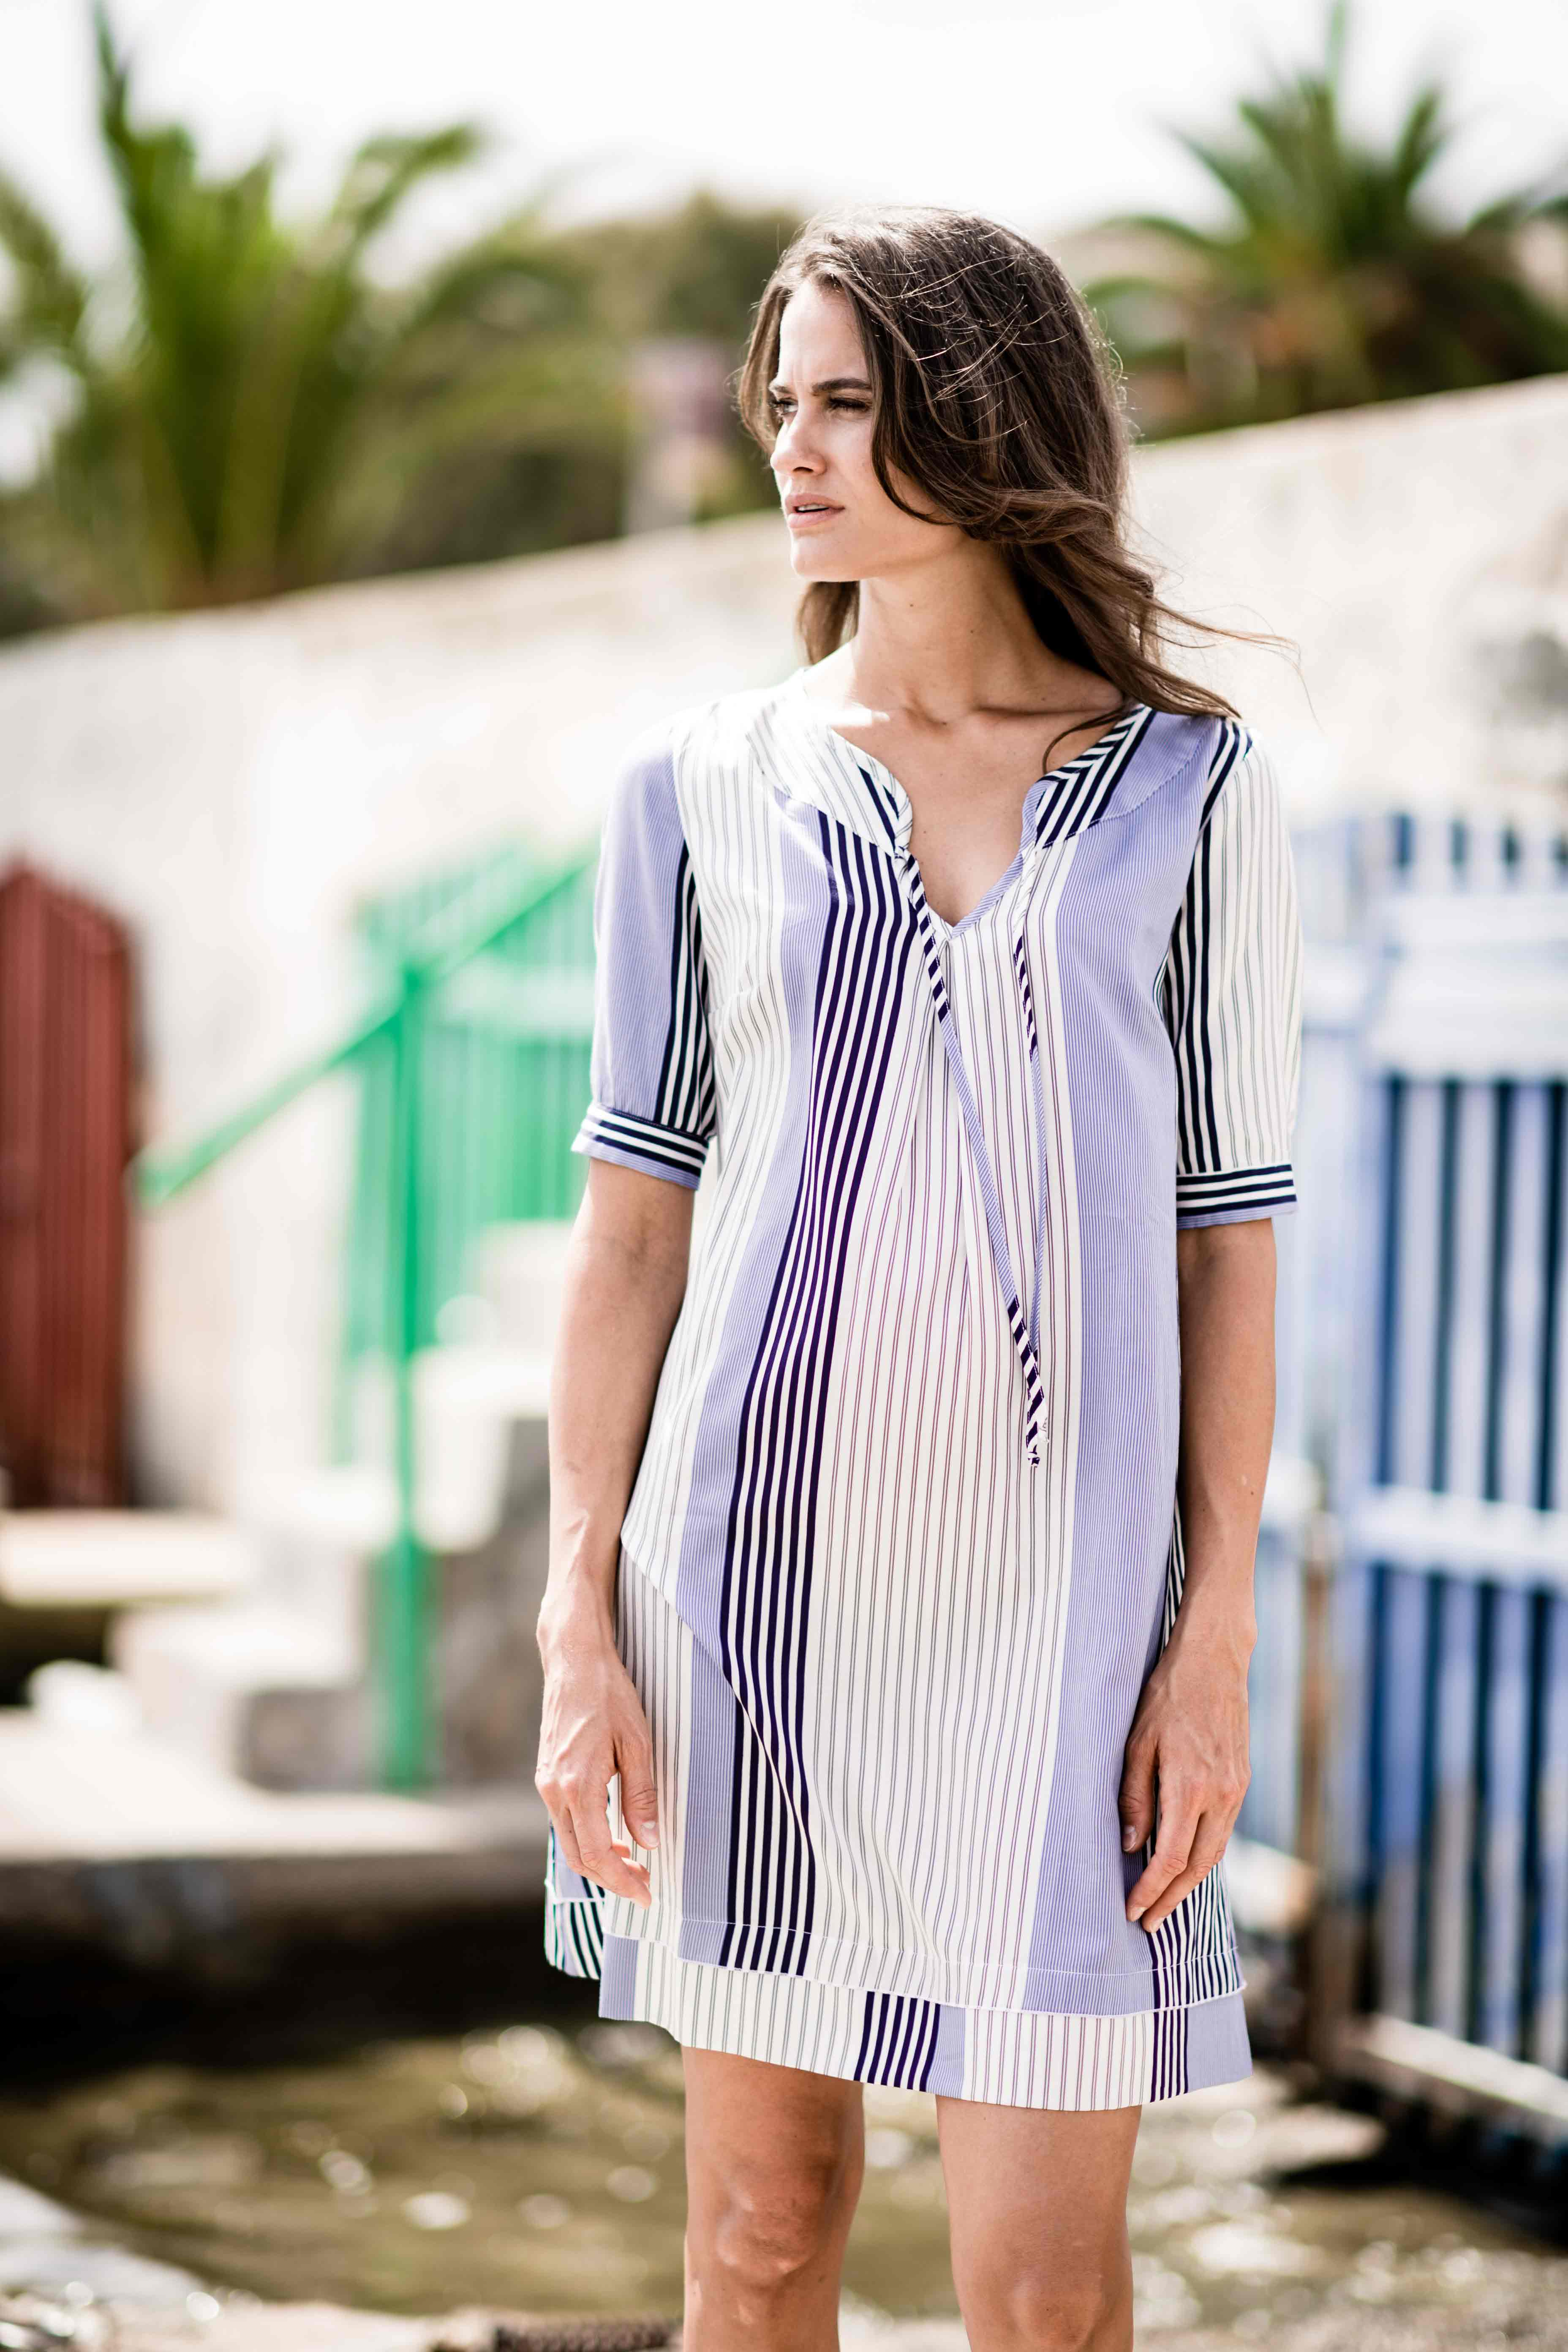 MOLLY-stripes-0039ITALY-59702_web